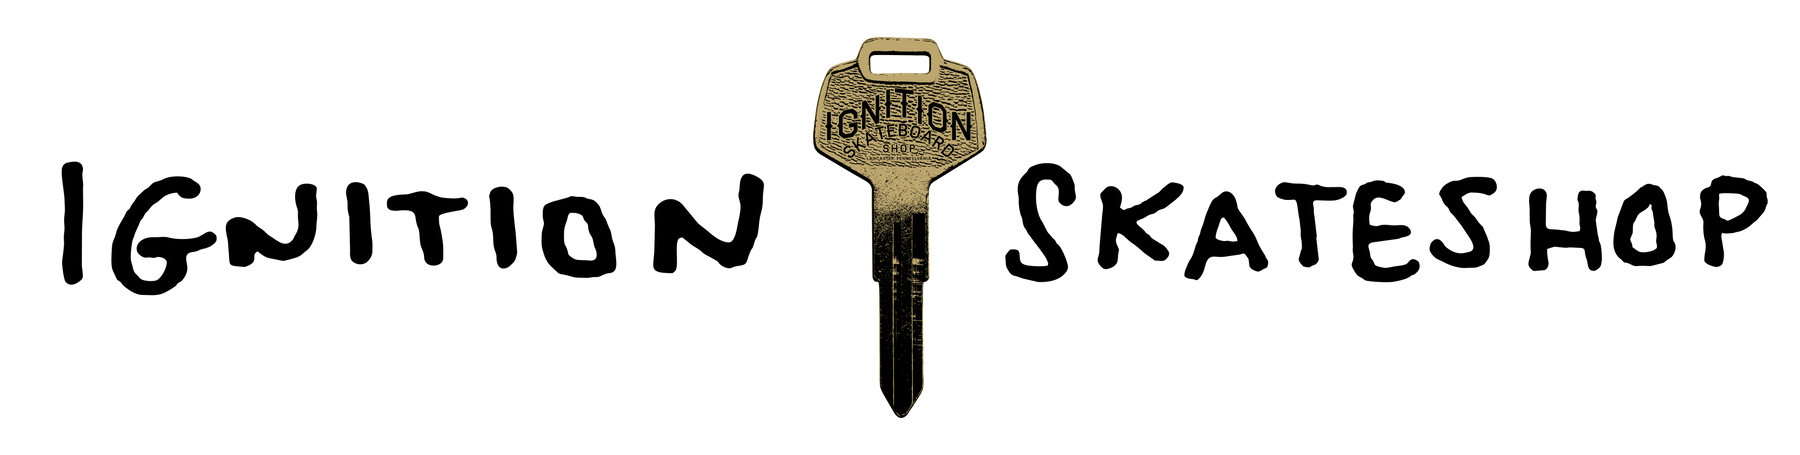 IGNITION_KEY_sm.png